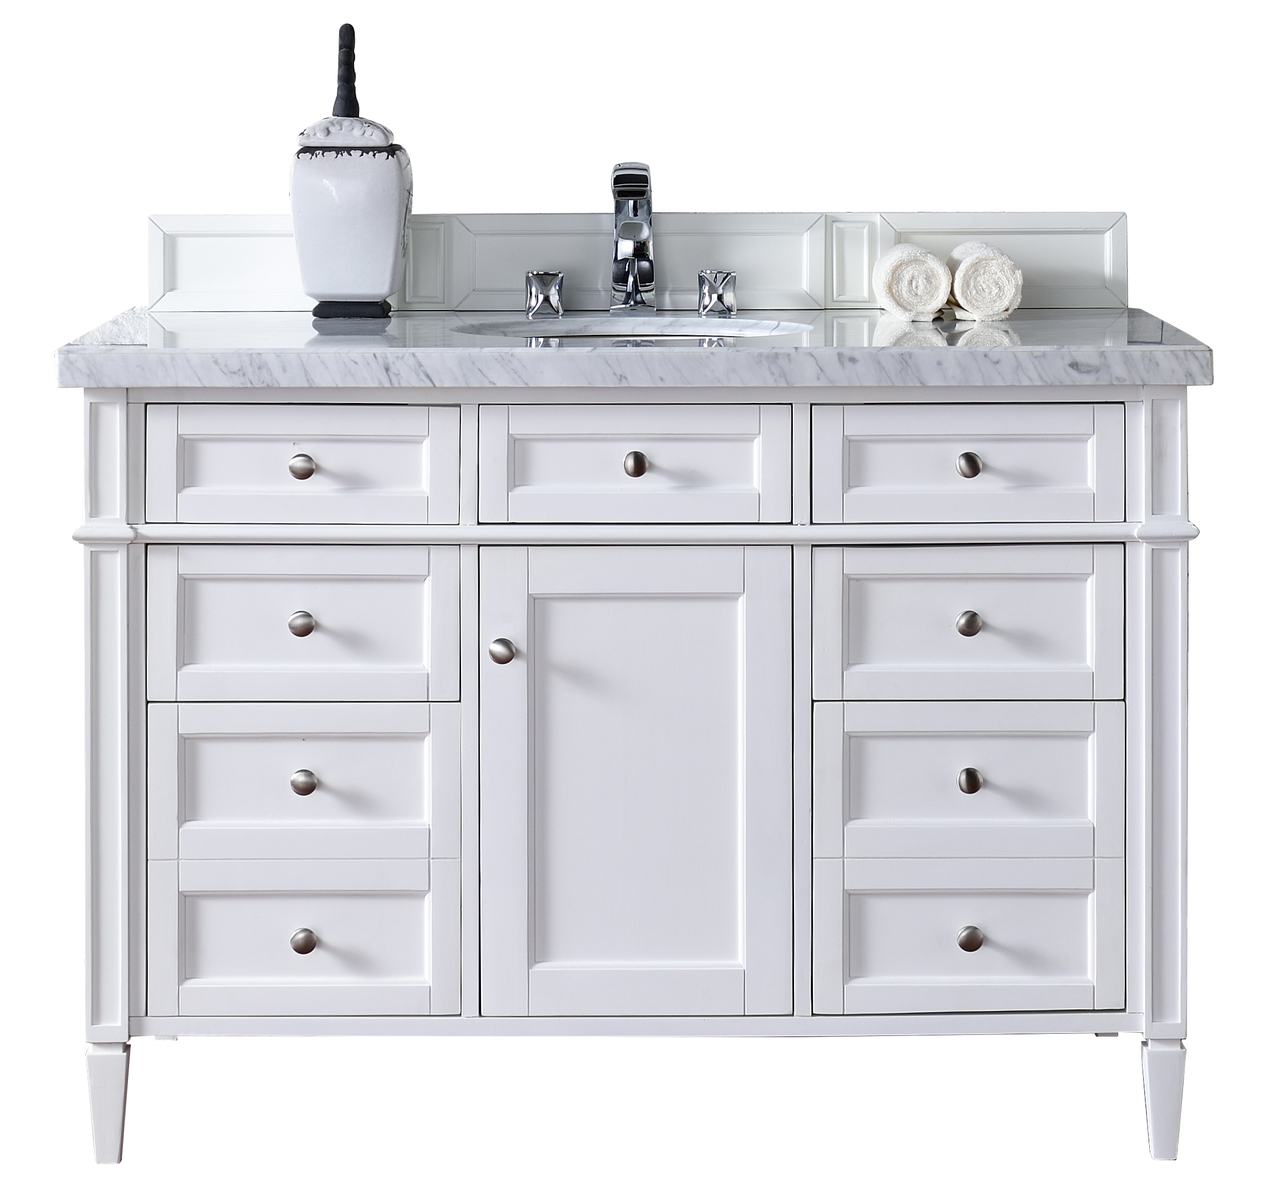 Contemporary 48 inch single bathroom vanity white finish for Bathroom vanities